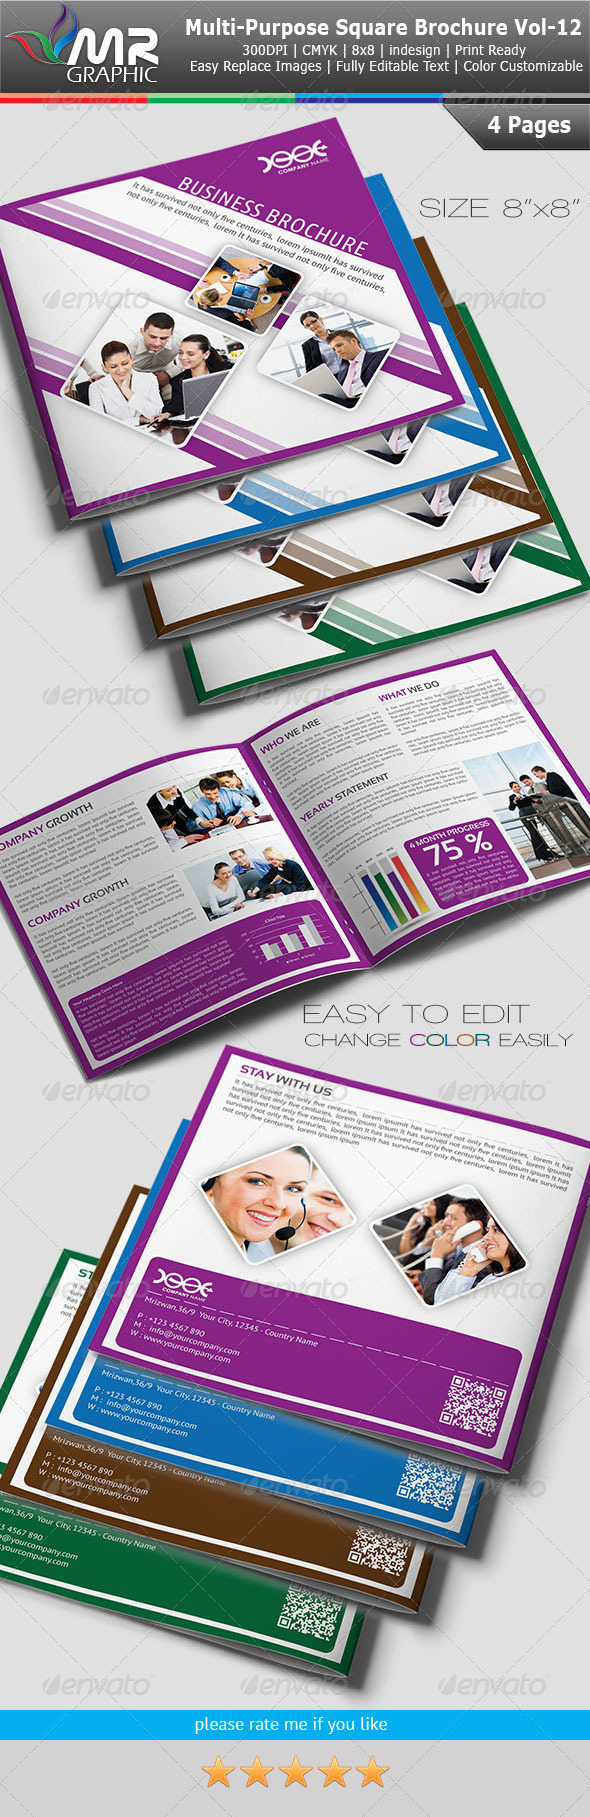 GraphicRiver Multipurpose Square Business Brochure Vol-12 4095857